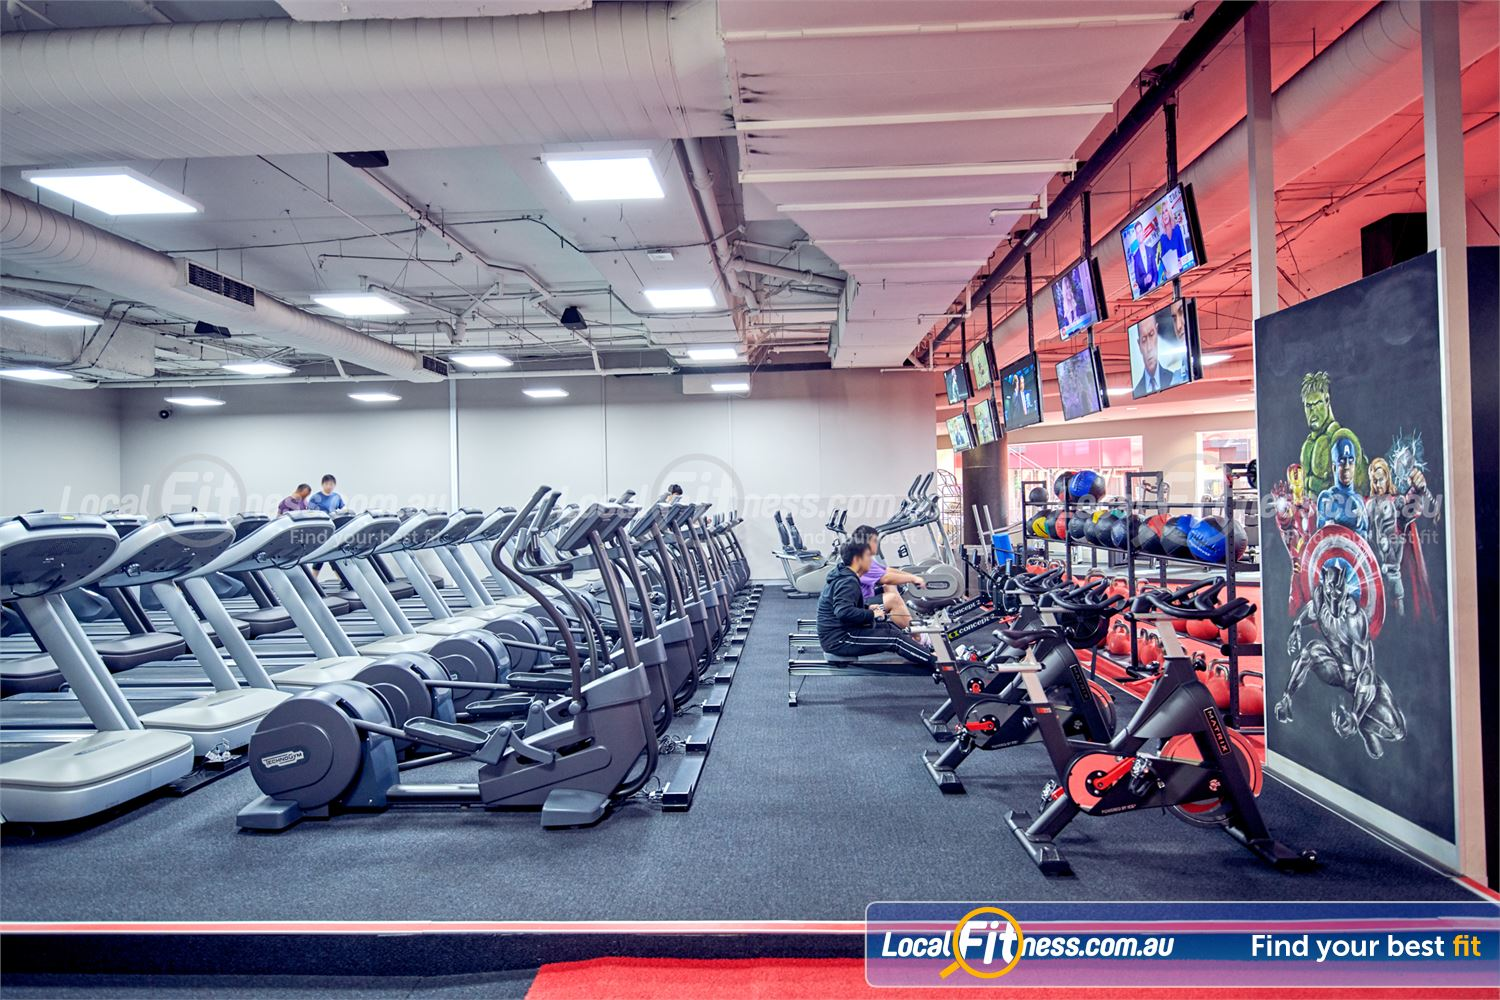 Fitness First Melbourne Central Platinum Melbourne Our Melbourne gym includes a state of the art cardio theatre.